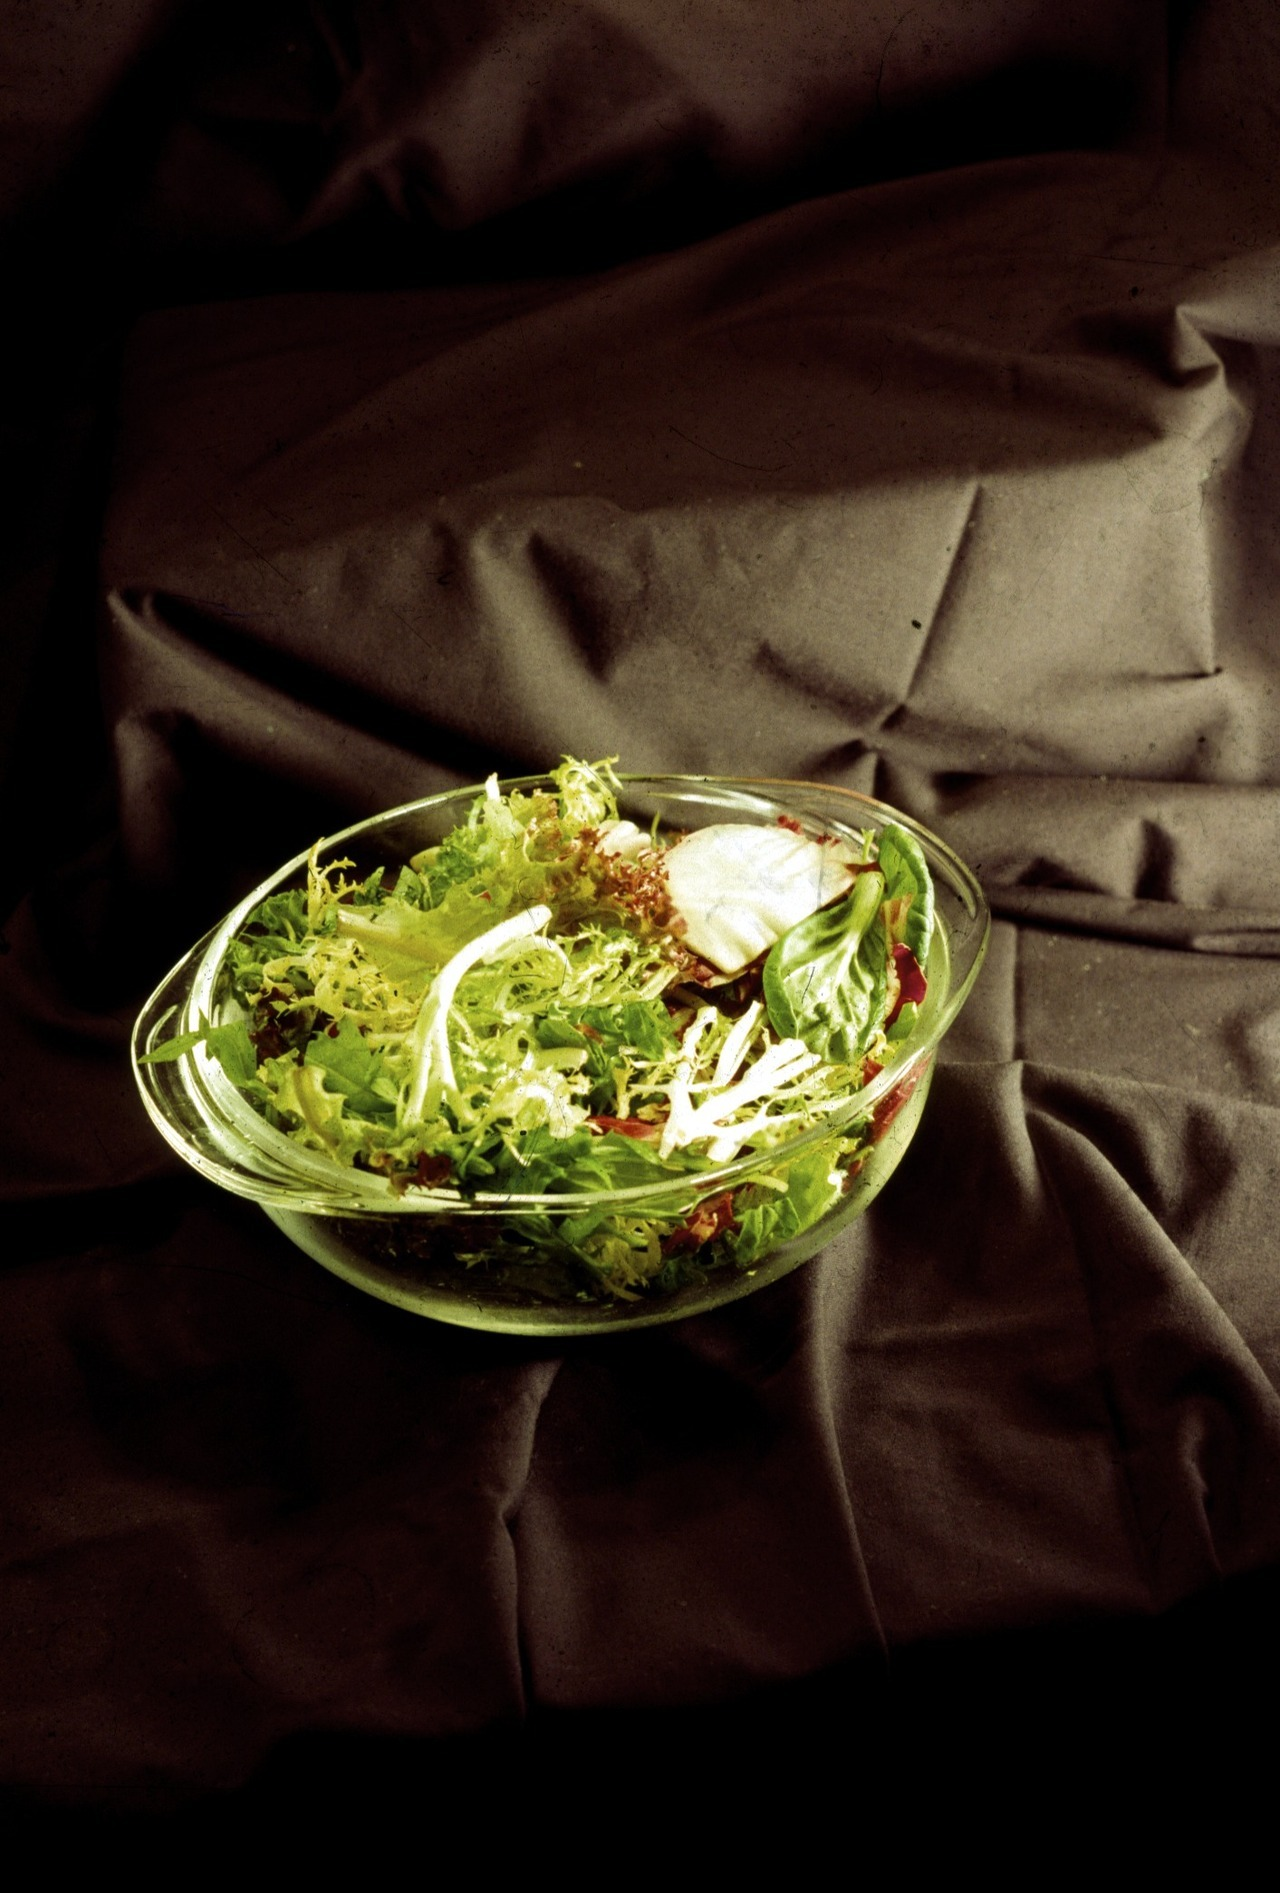 This is a photograph of a salad I took in 1996 or so. This is a very important salad.